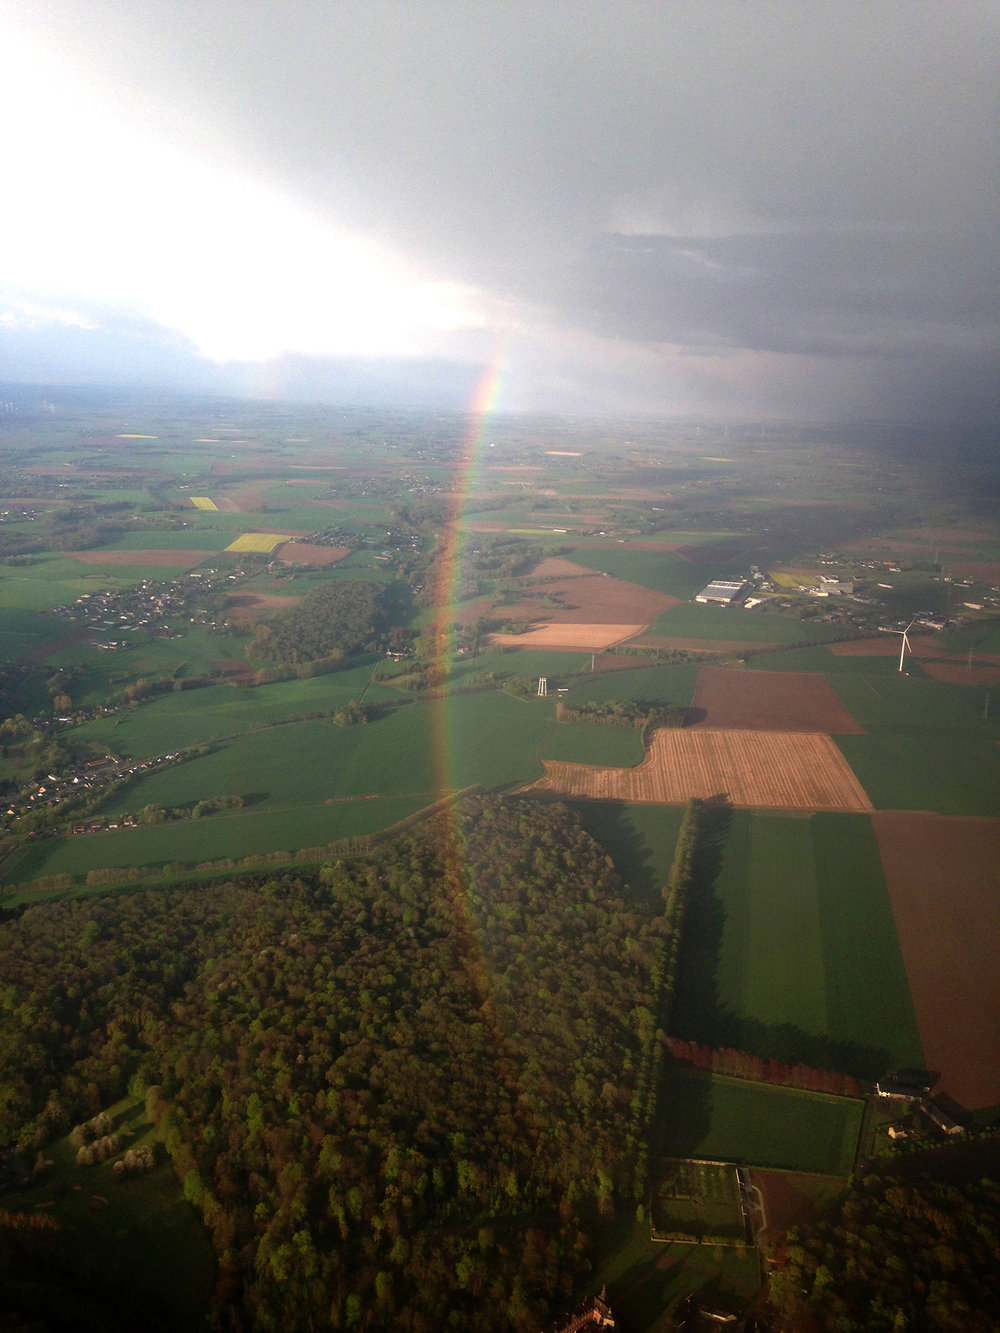 Landing in Belgium, welcome to the lowlands!